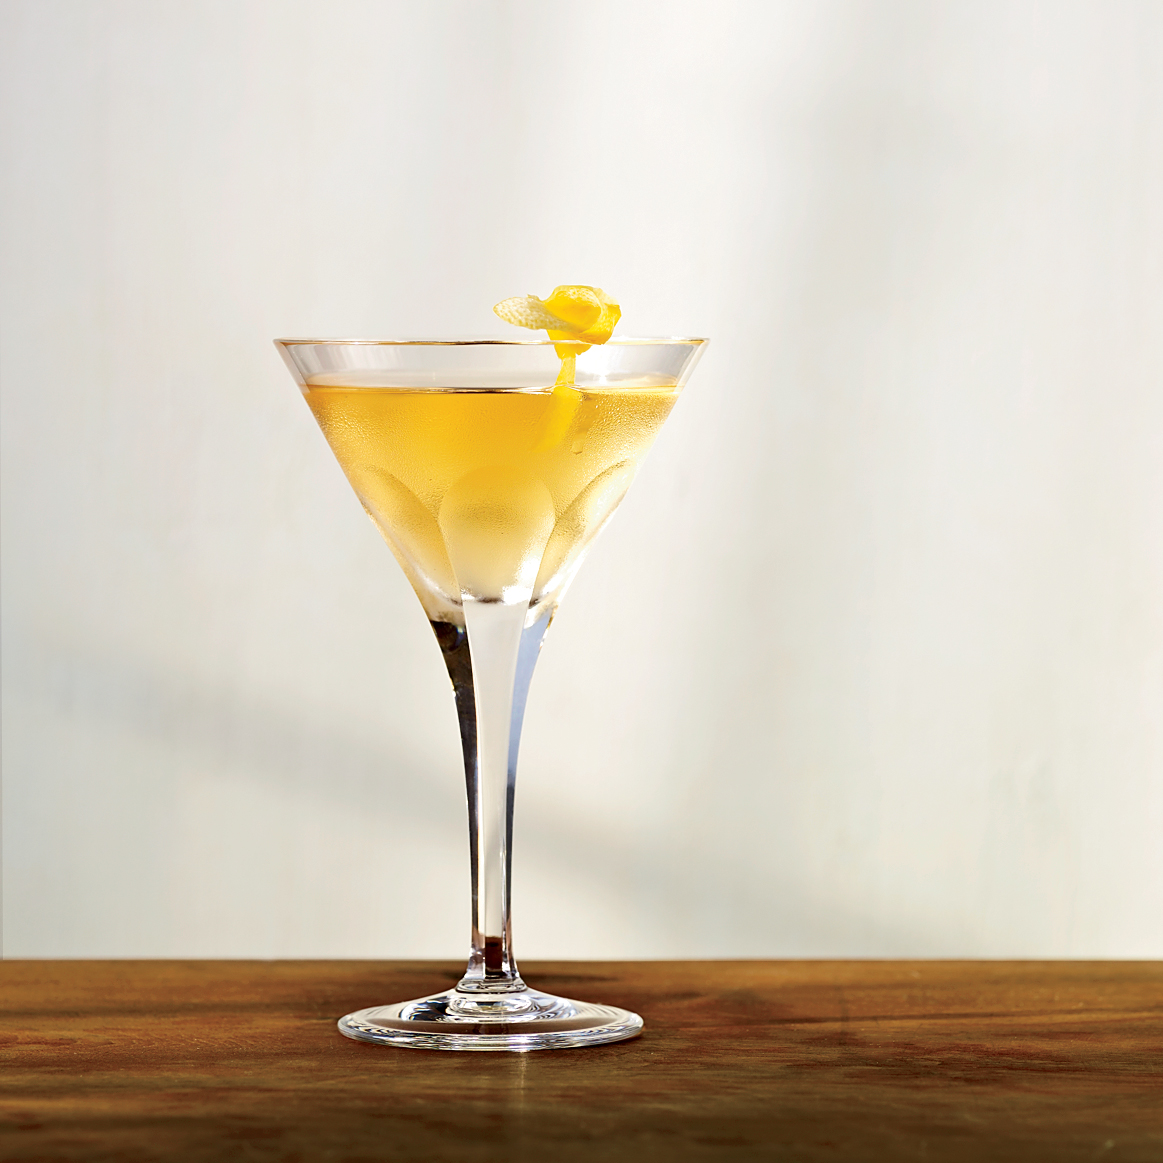 martinis, cocktails, Aged Martini